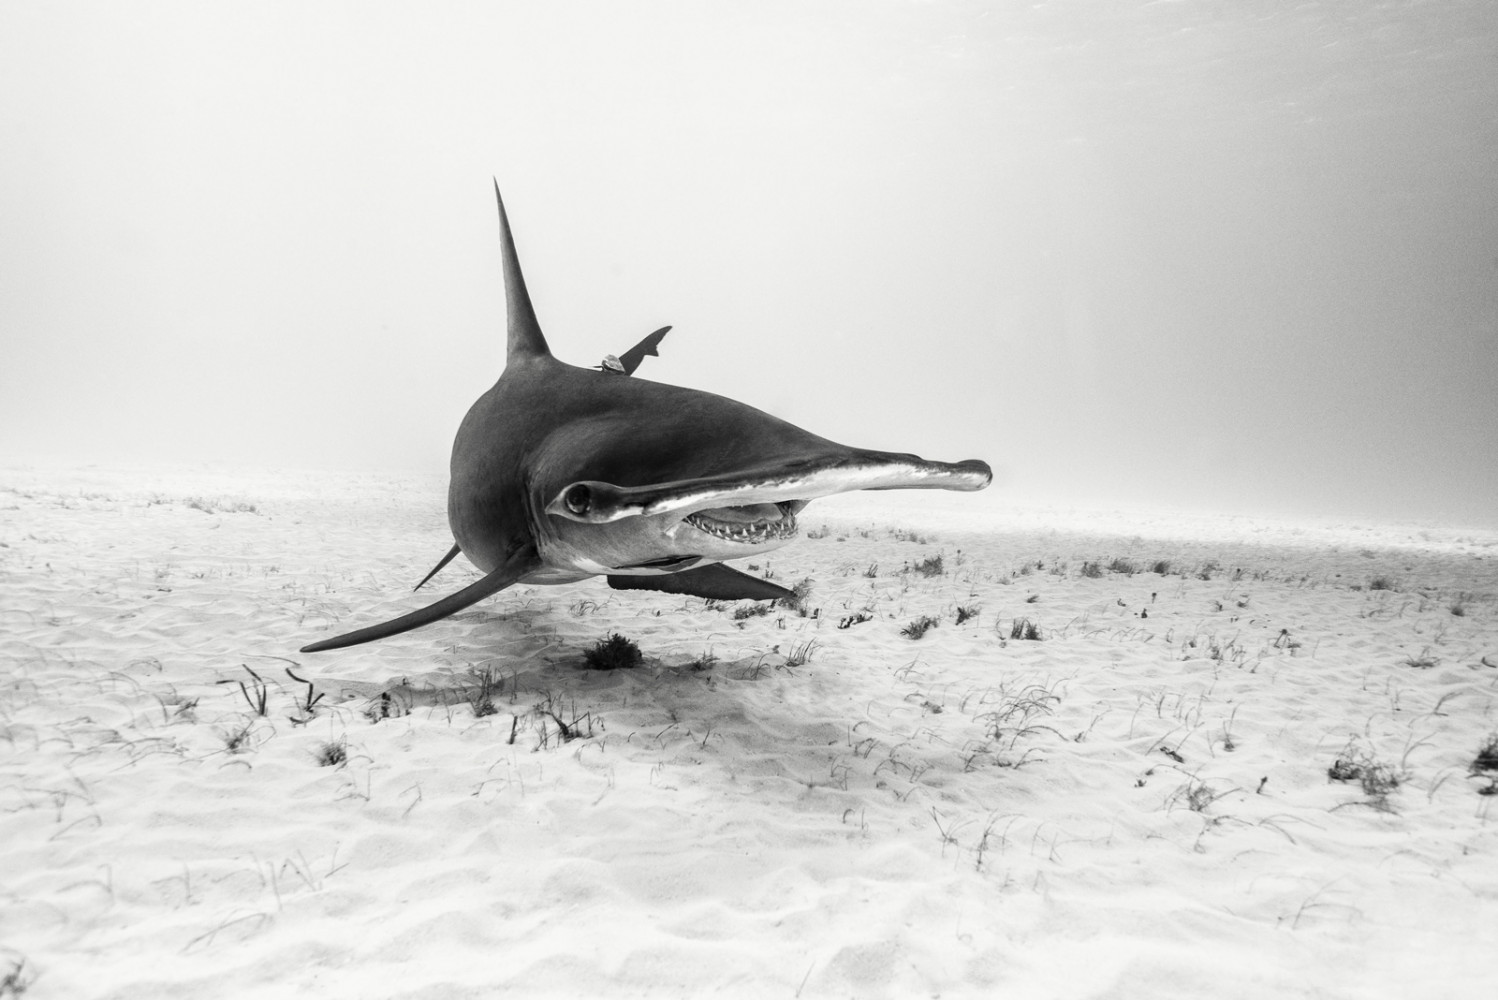 A 12 foot shark turns off 2 feet from Michael Muller's lens